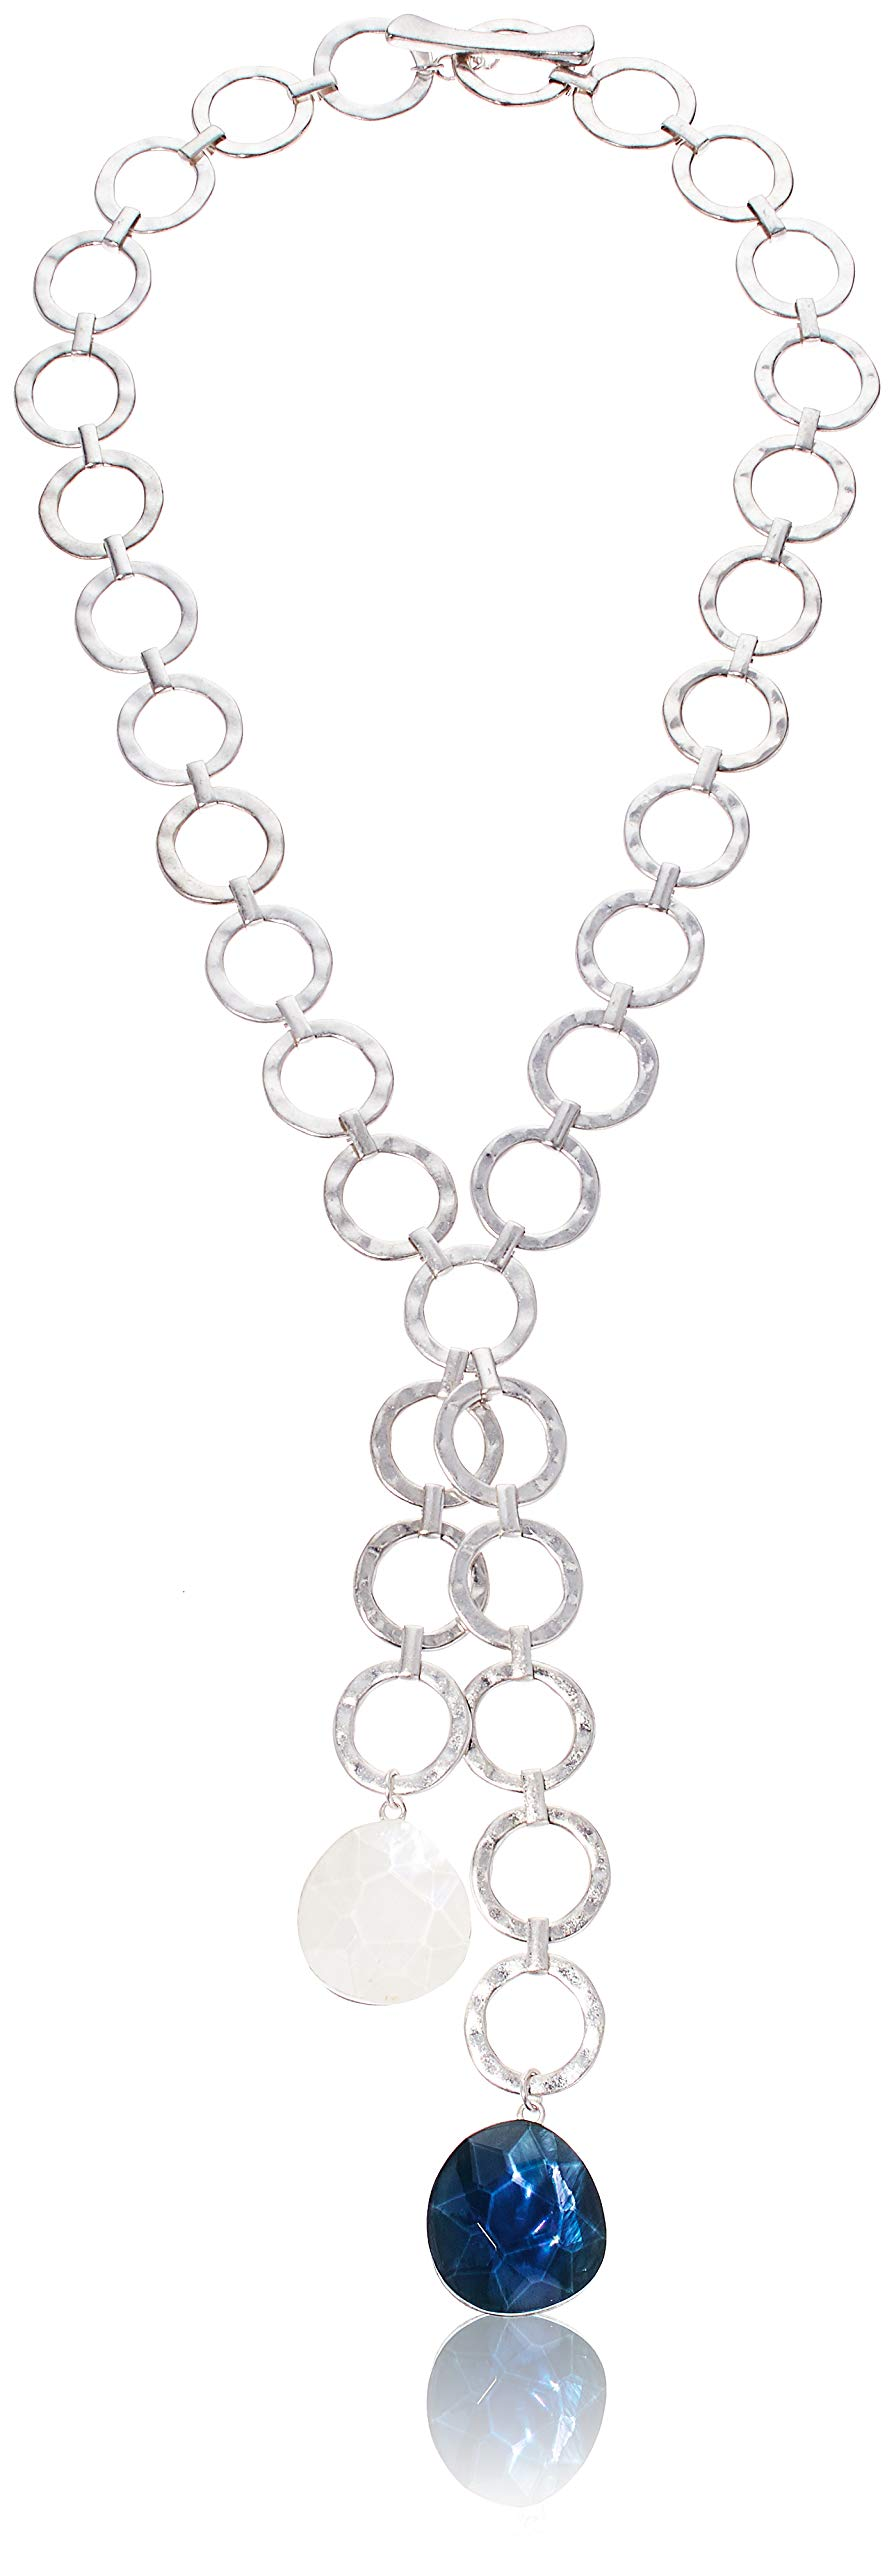 Robert Lee Morris Women's Stone Hammered Circle Link Y-Shaped Necklace, Blue, One Size by Robert Lee Morris